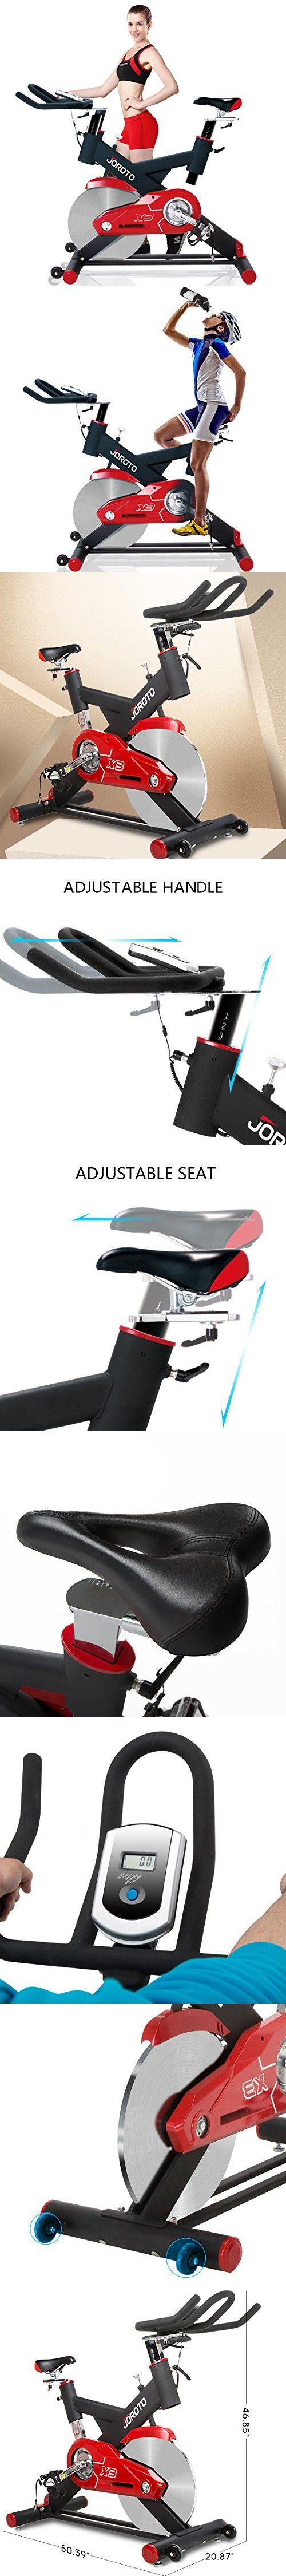 Exercise Bike Indoor Cycle Trainer JOROTO X3 Workout Cycling Bicycle Exercise Stationary Bike Machine for